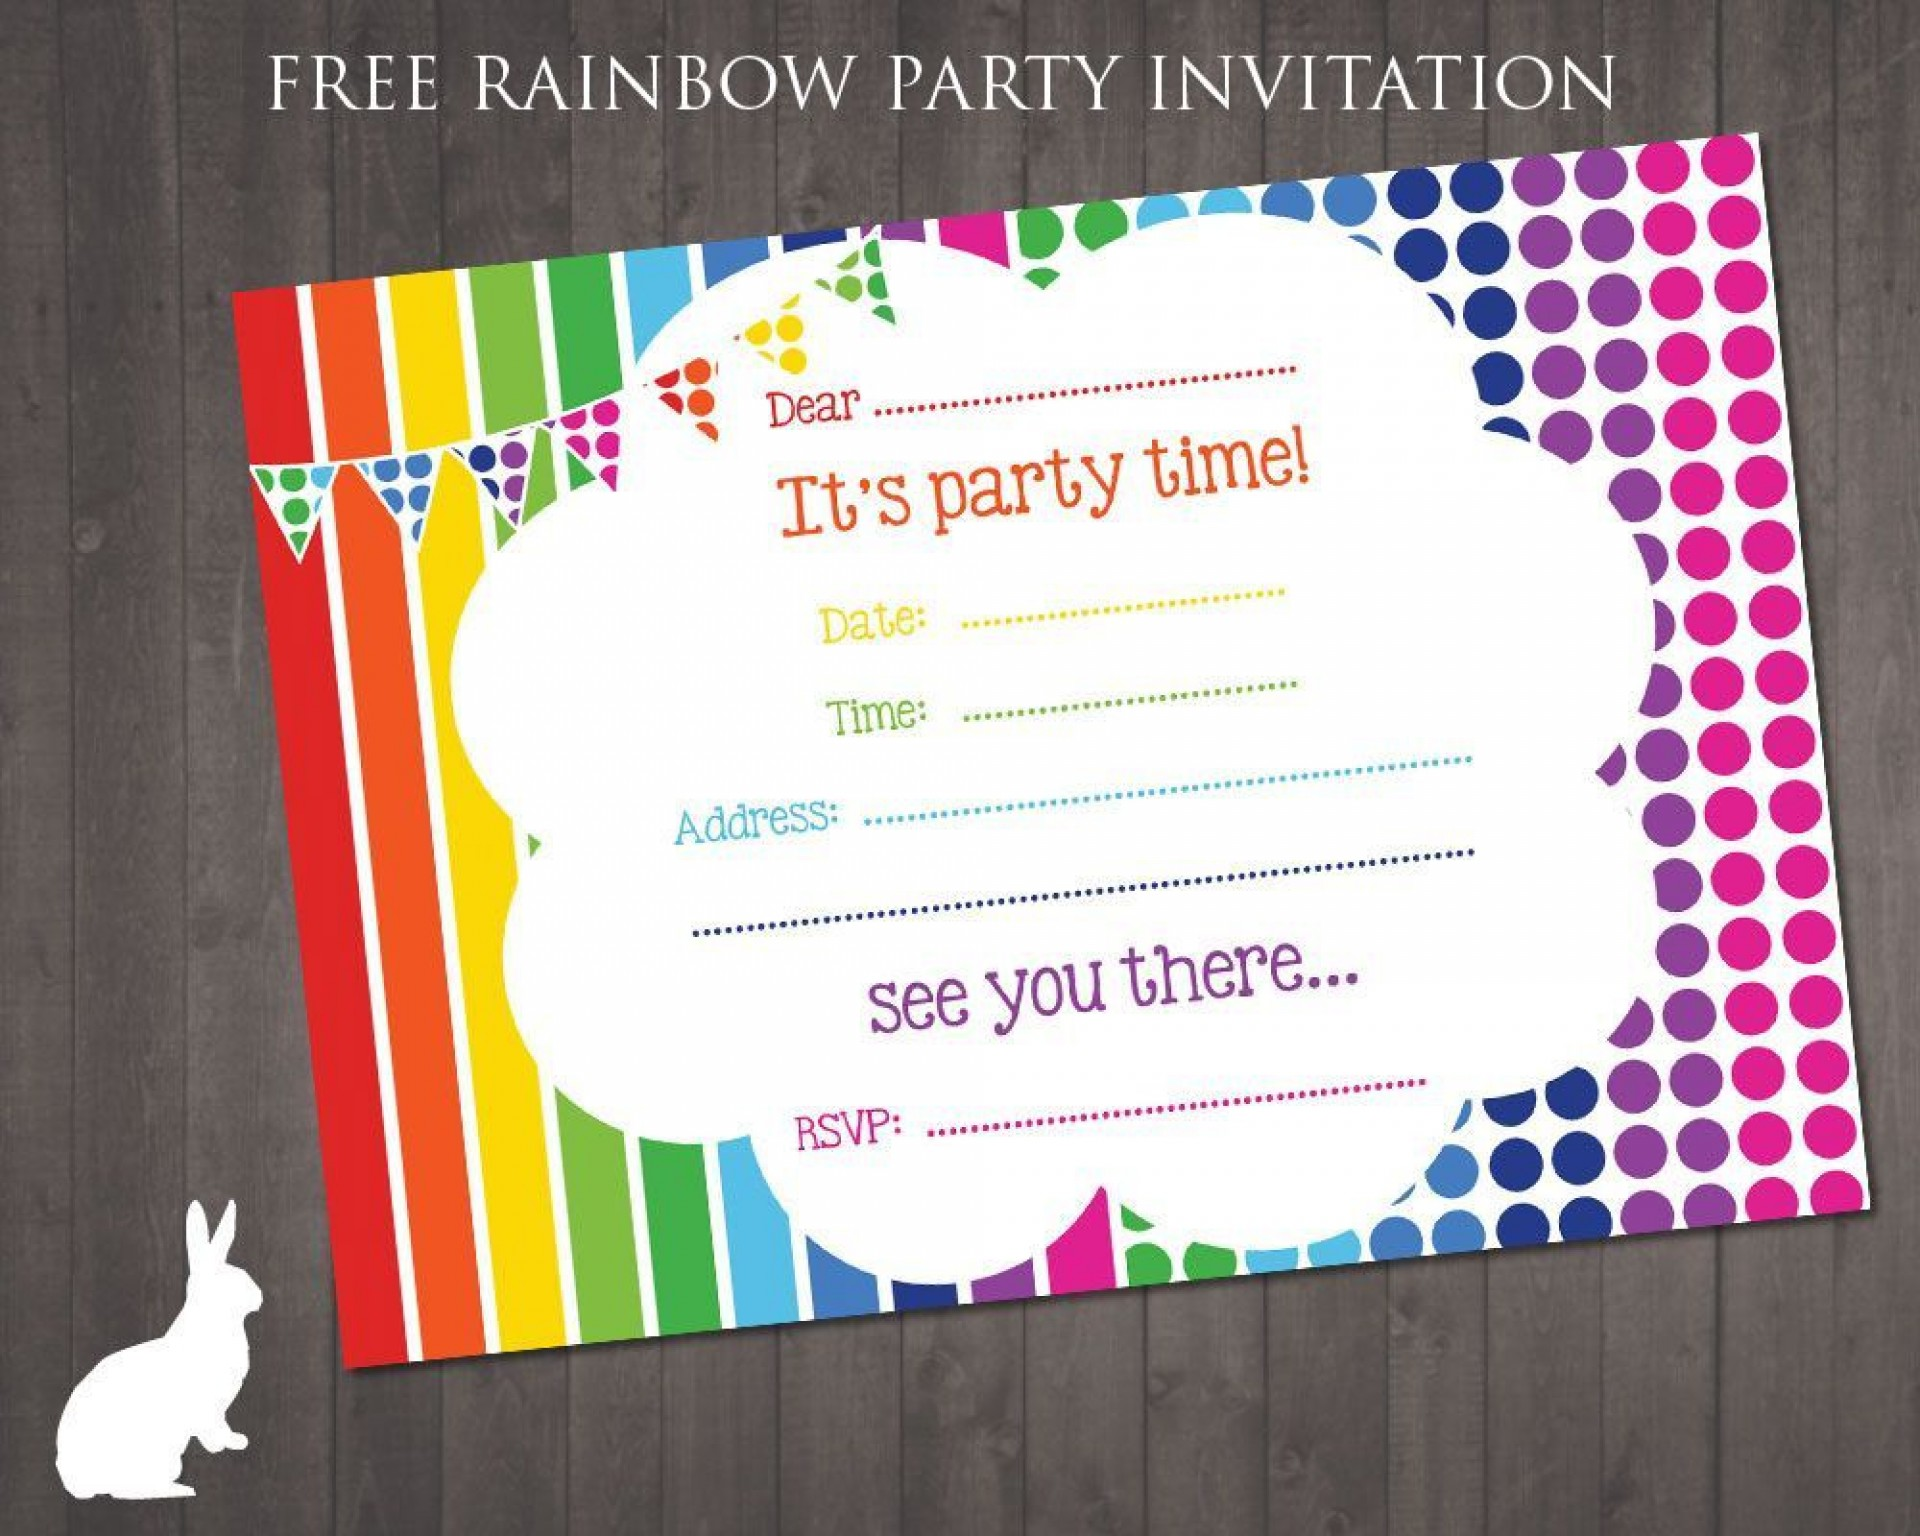 000 Astounding Free Online Invitation Template Australia High Definition  Party Invite1920